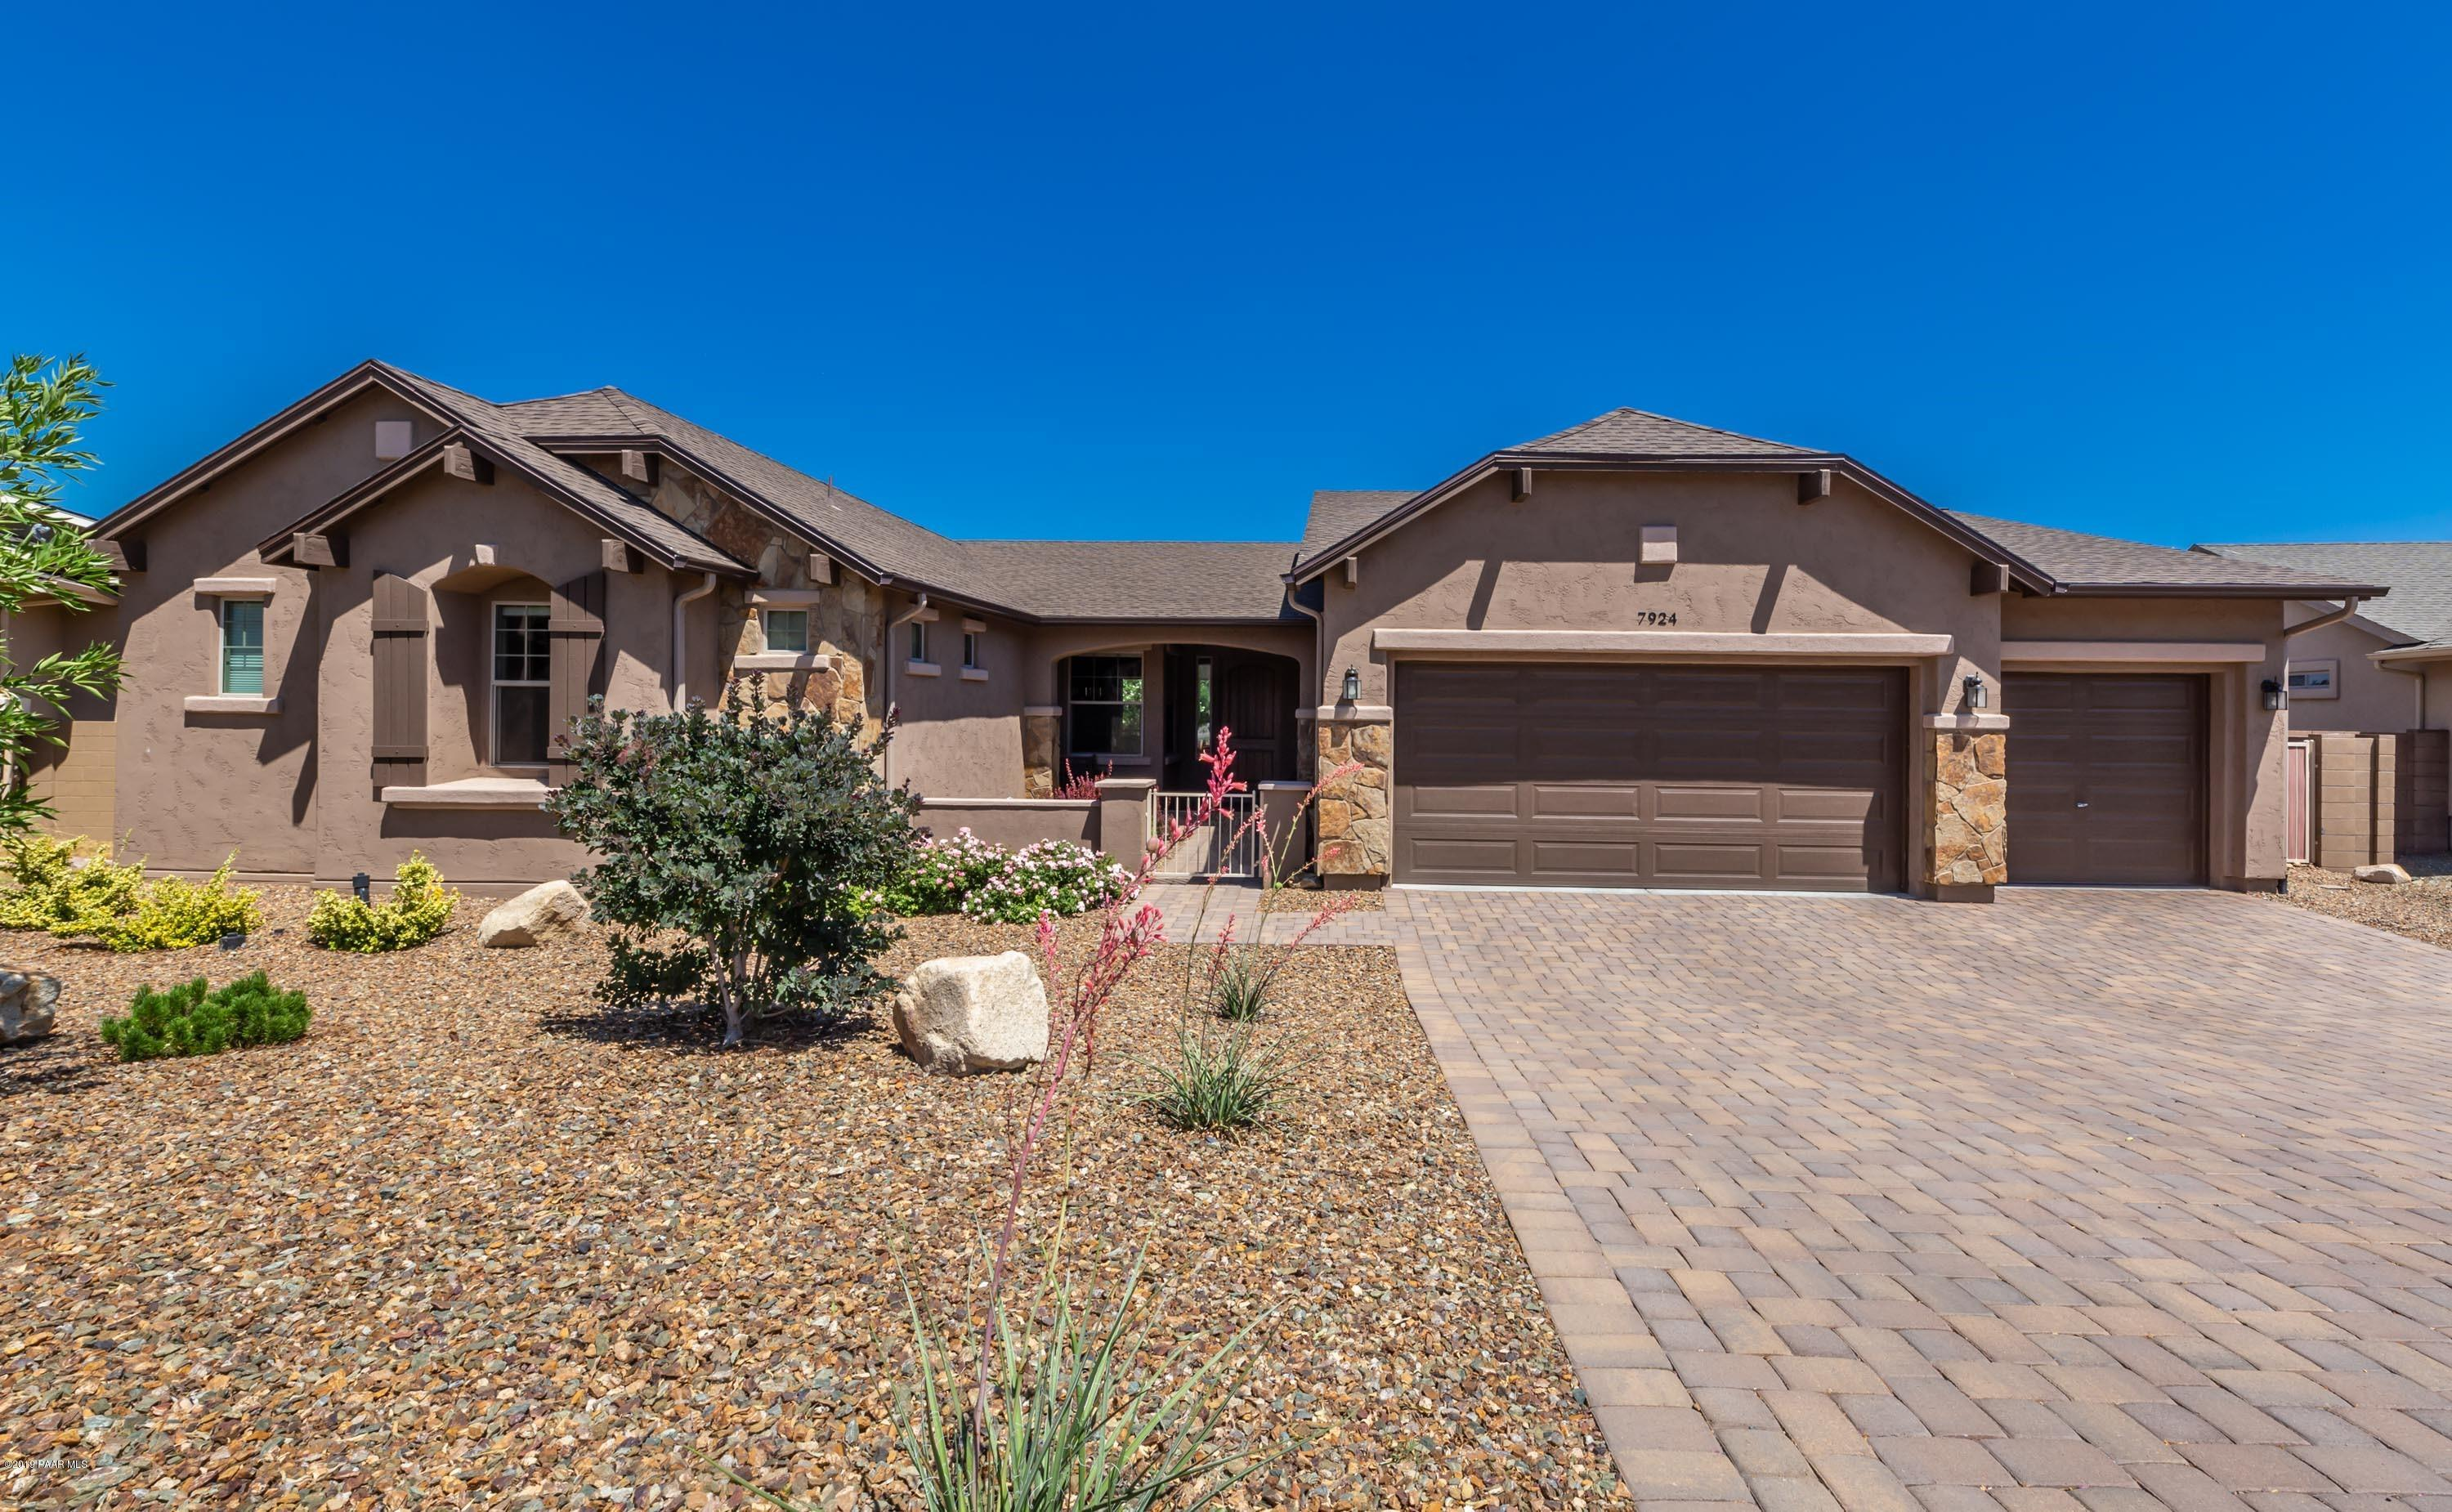 7924 E Sleepy Owl Way 86315 - One of Prescott Valley Homes for Sale